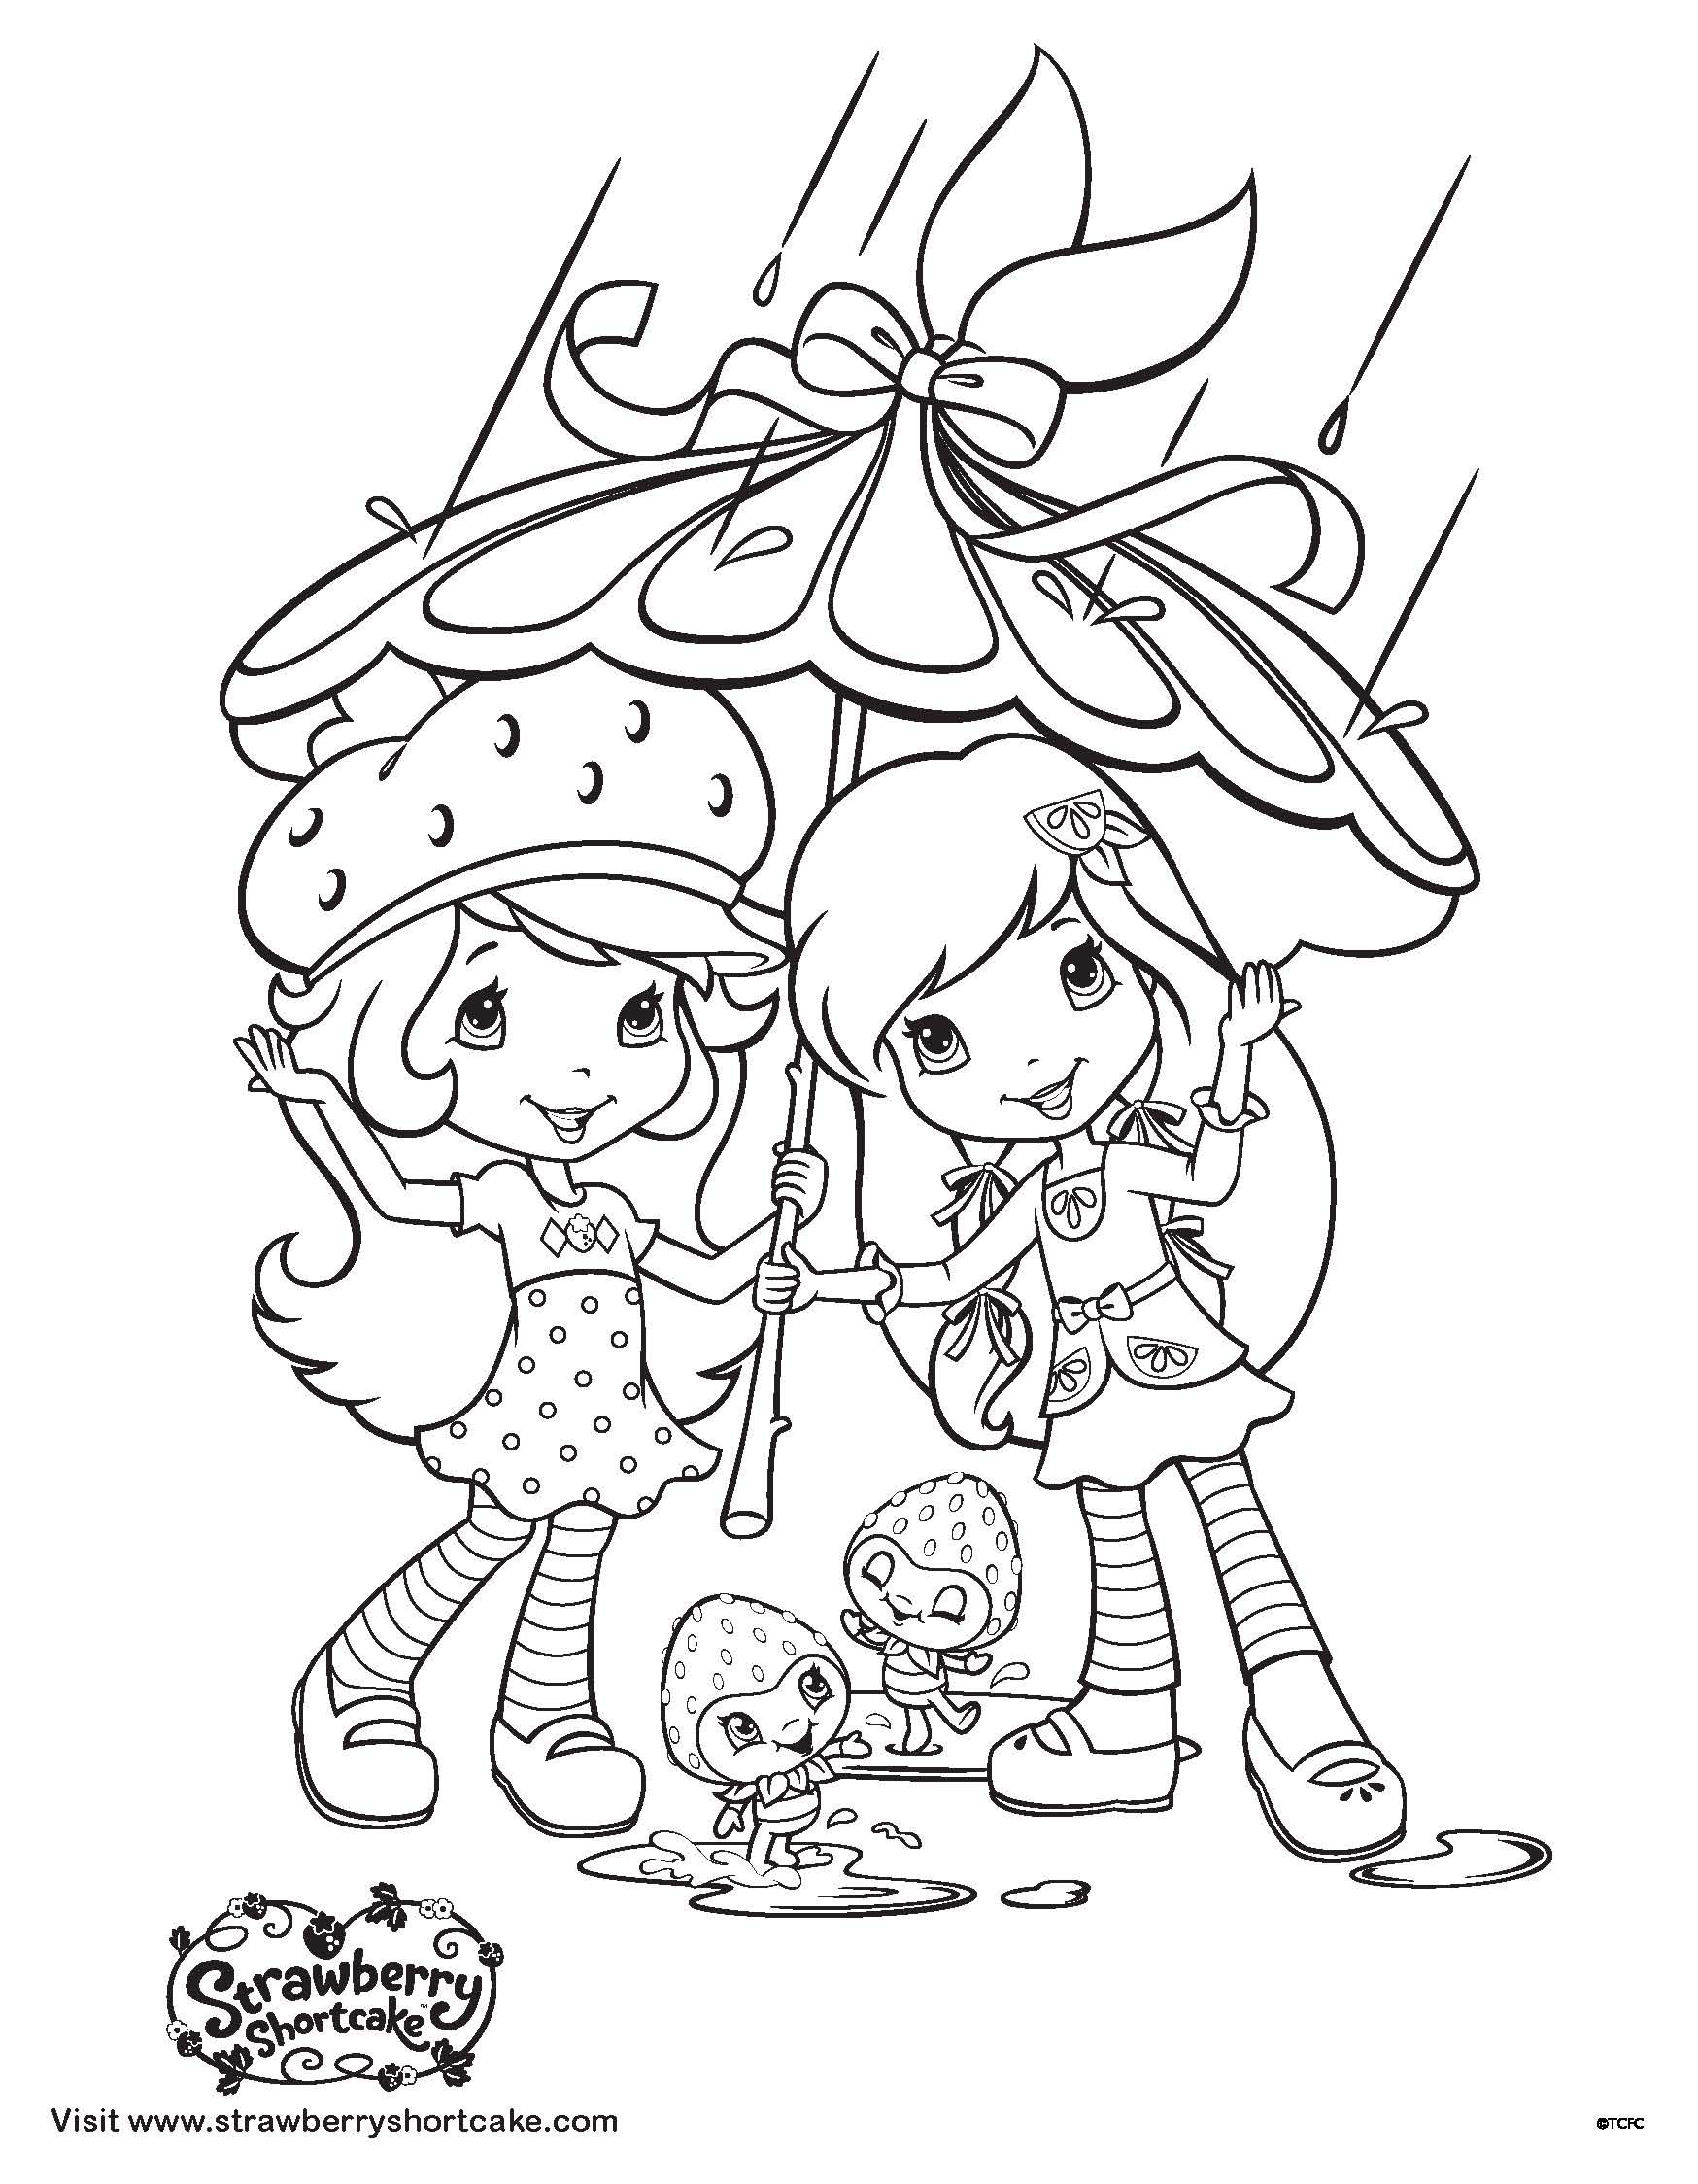 Printable coloring pages strawberry shortcake - Strawberry Shortcake Coloring Sheet April Showers Bring May Flowers